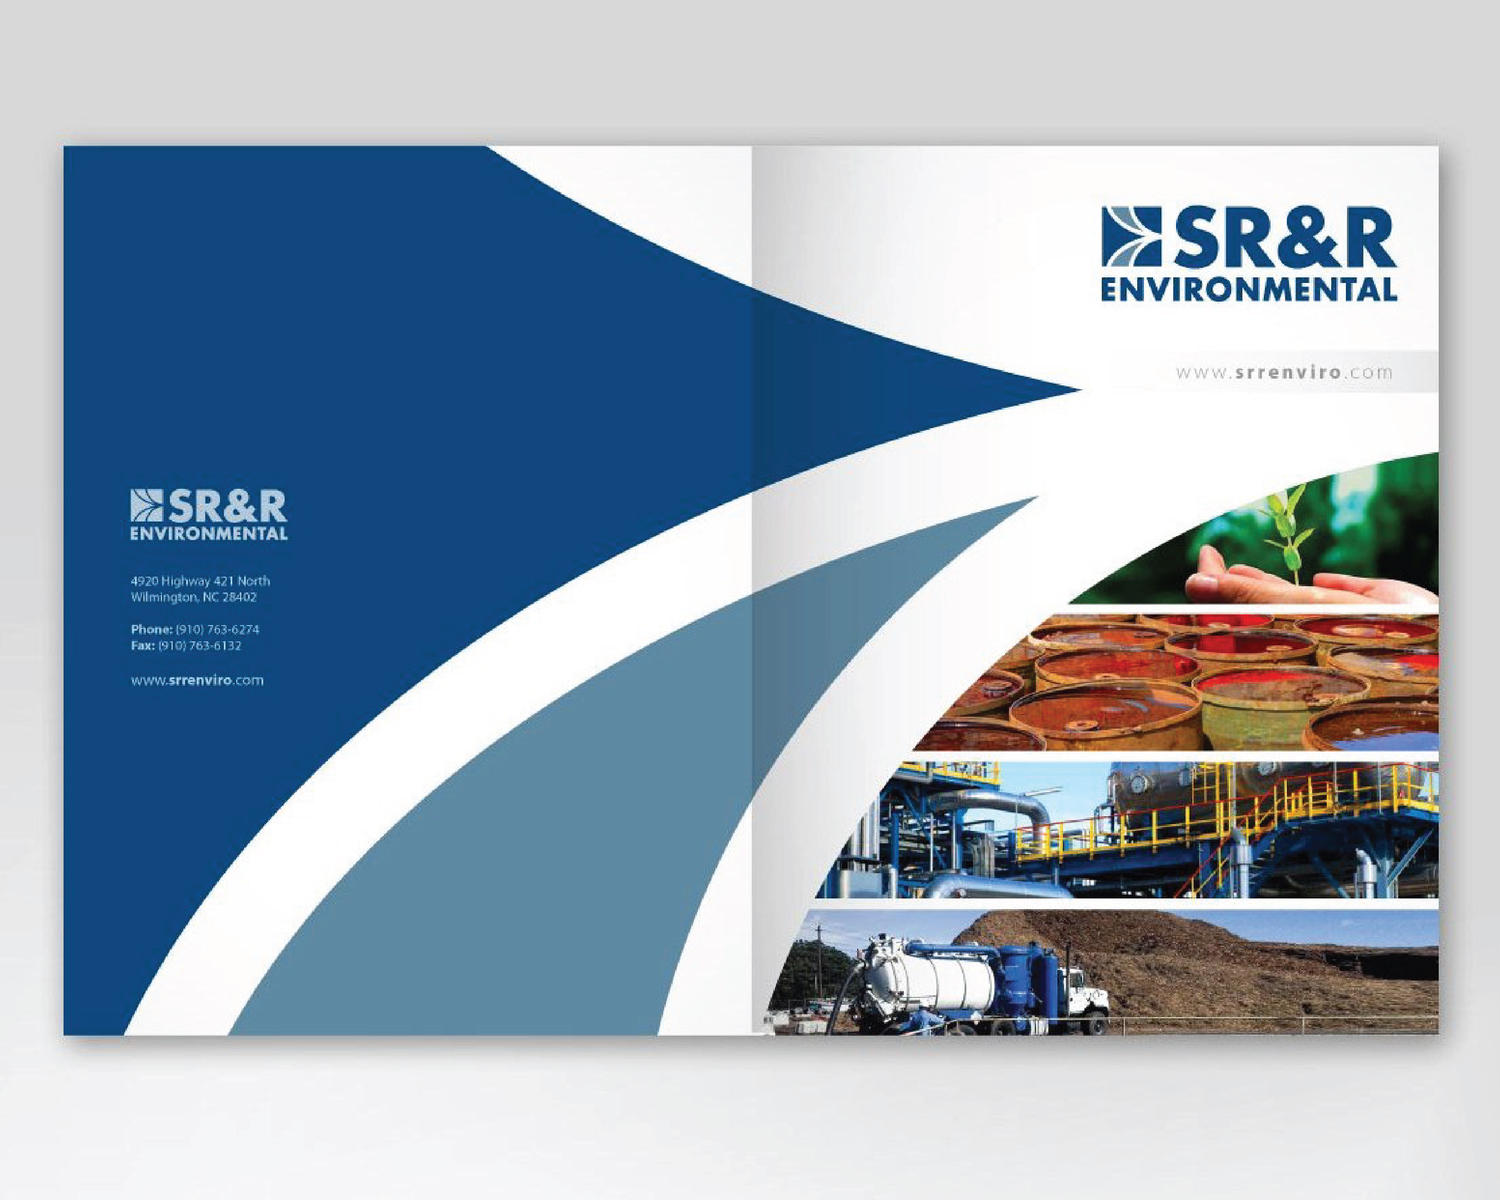 professional company brochure design by carlos fernando on envato studio